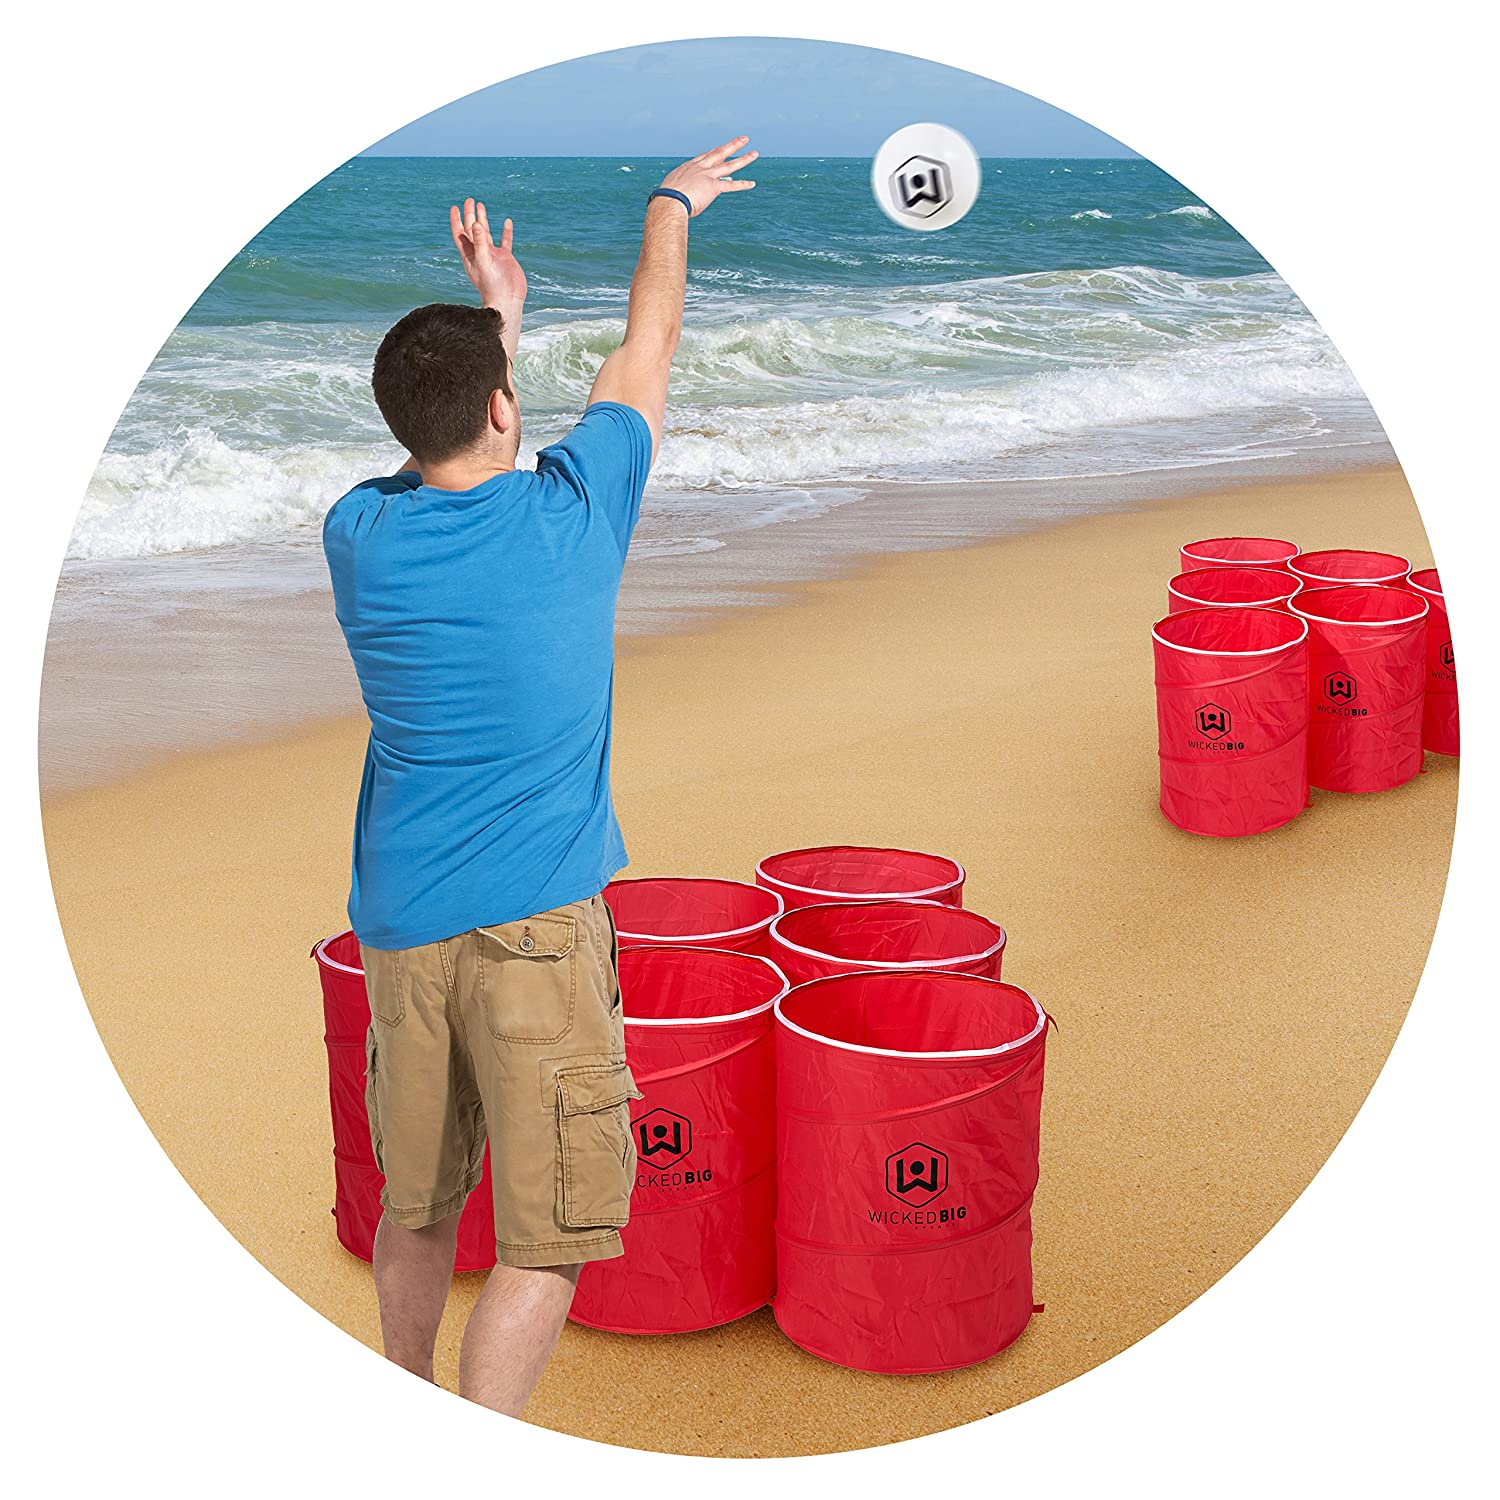 e71f6cfc Amazon.com: Wicked Big Sports Supersized Pong Outdoor/Indoor Sport Tailgate  Games, 6 Cups: Toys & Games